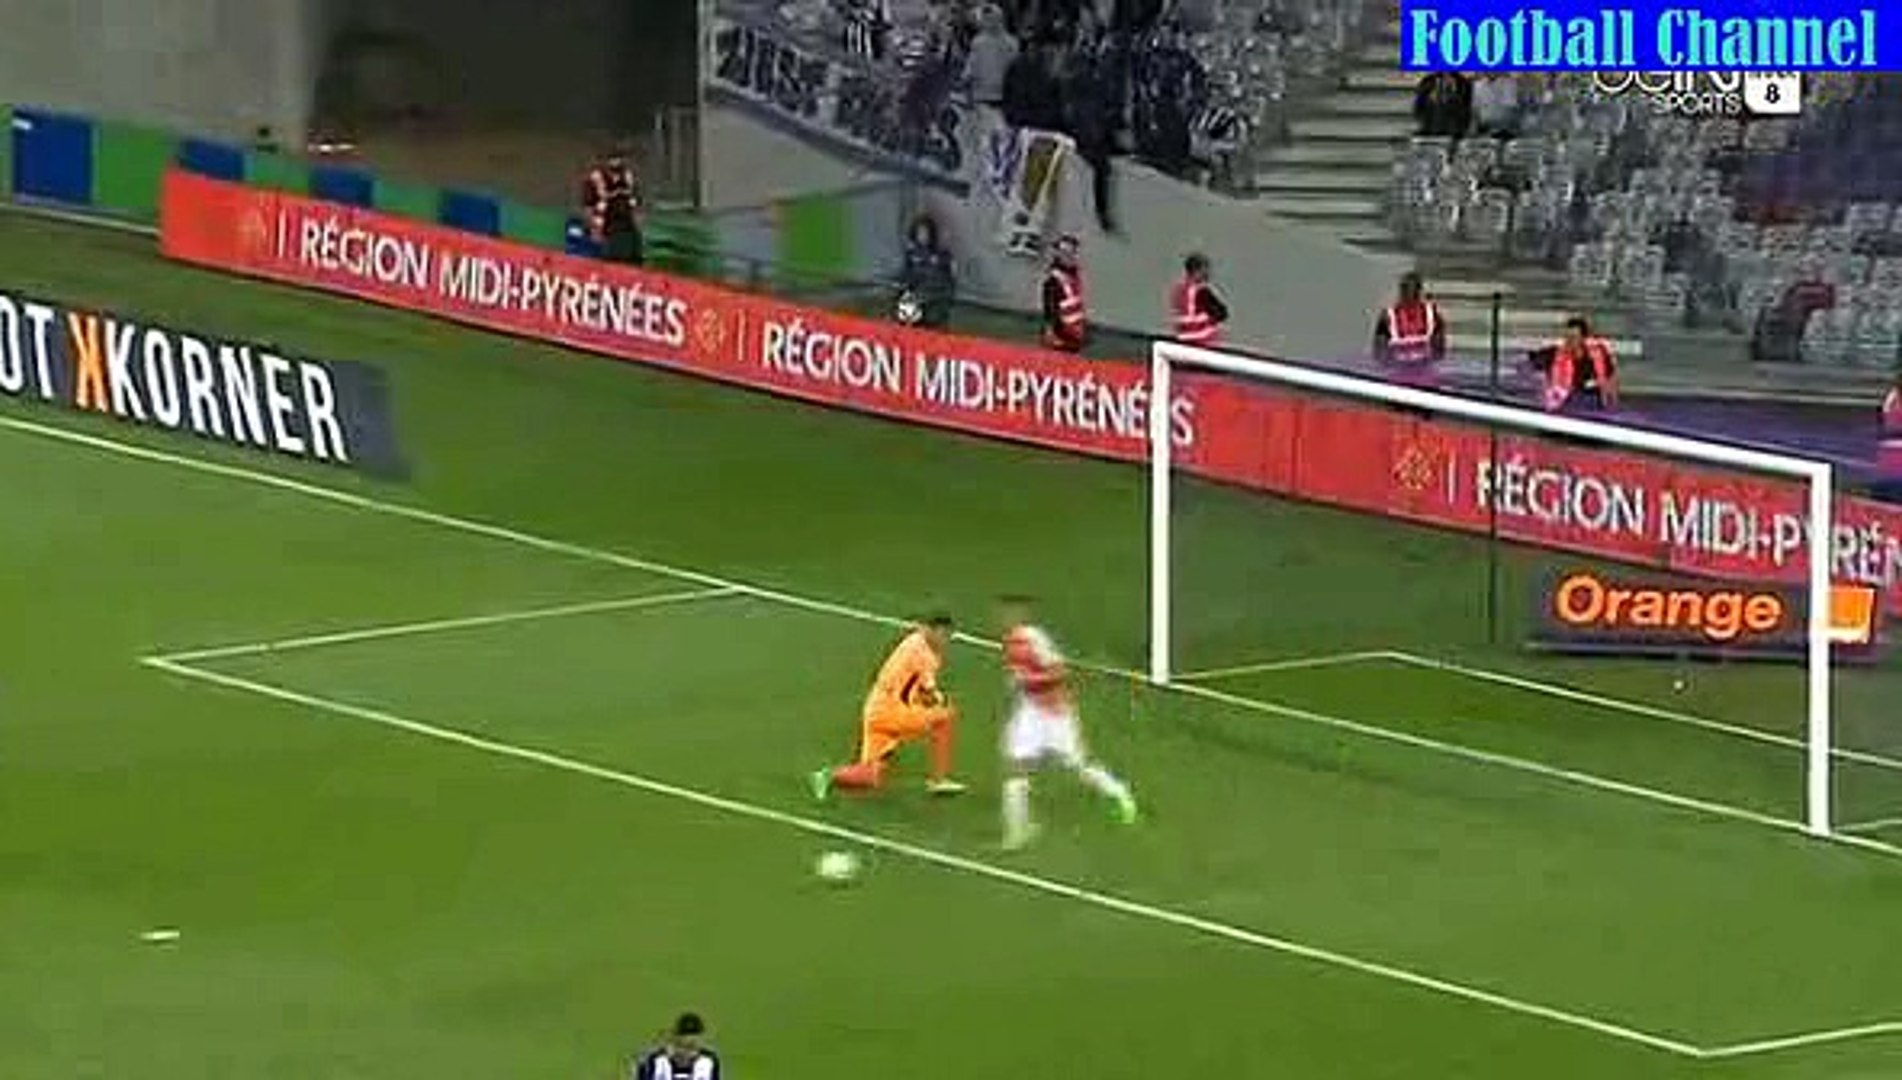 Goal Thomas Lenar - Toulouse vs AS Monaco 1-1 *22.08.2015 ligue1